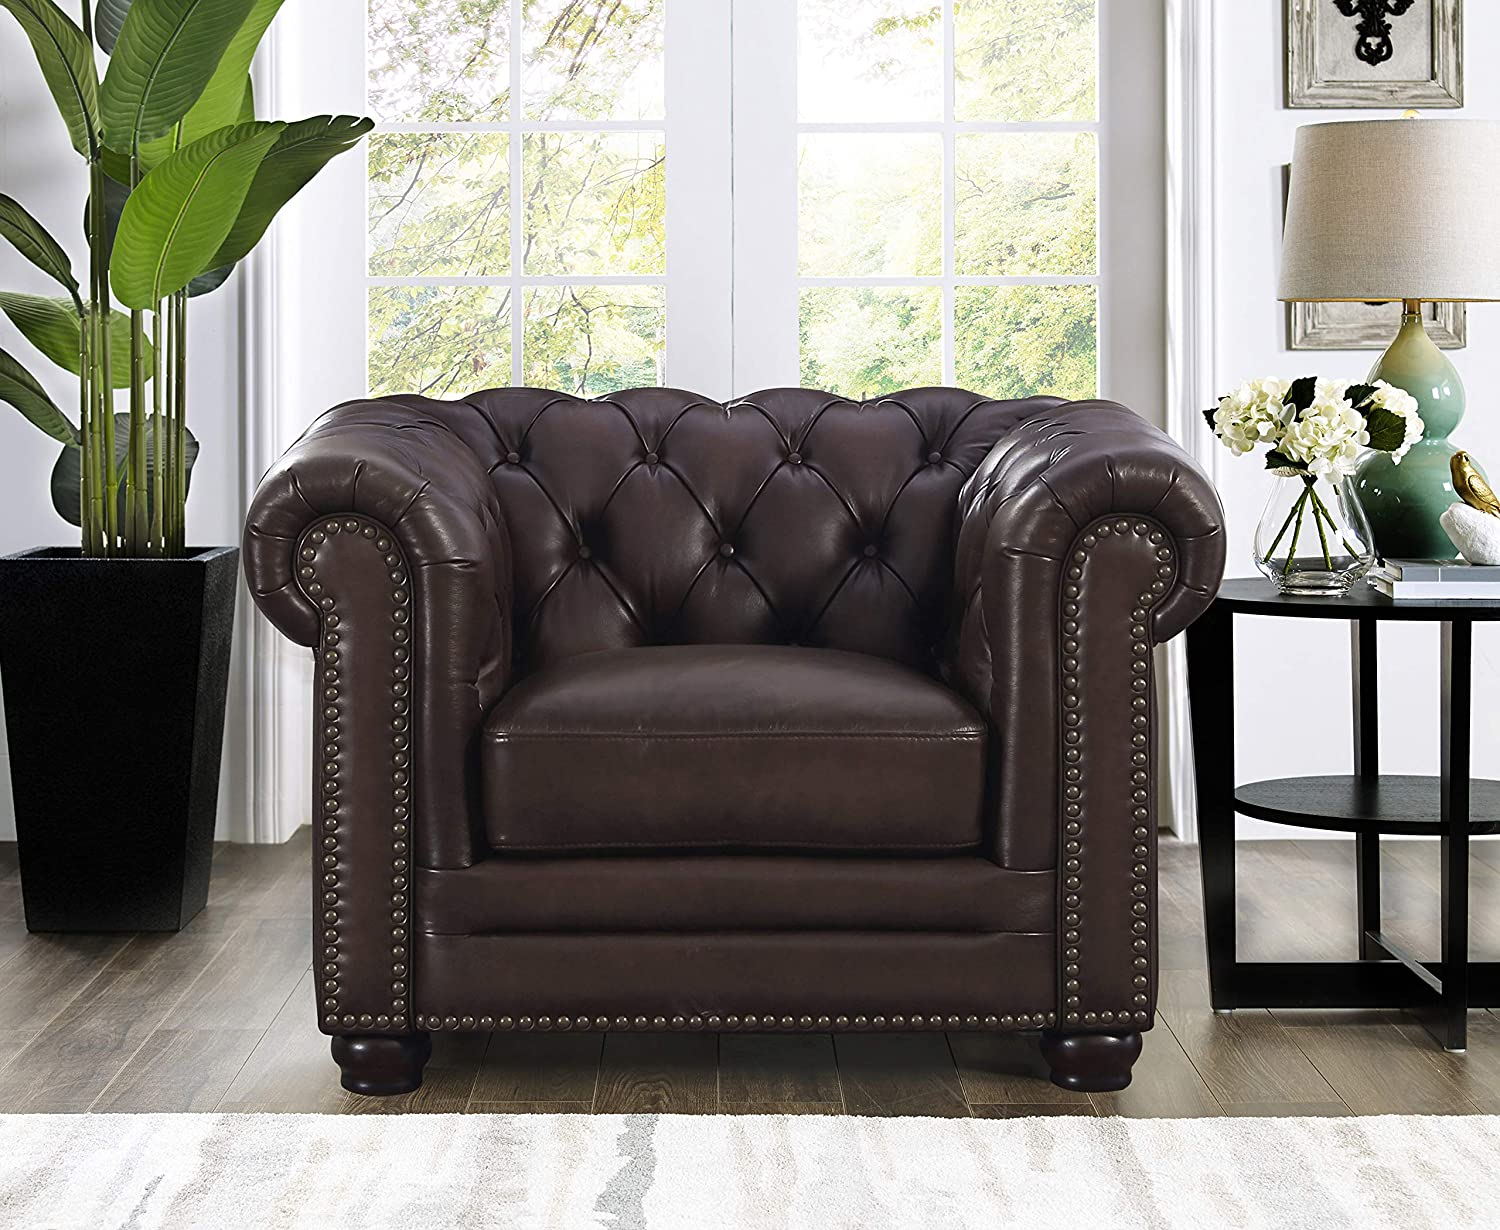 Brown Hydeline Aliso 100/% Leather Sectional Sofa 3-Piece